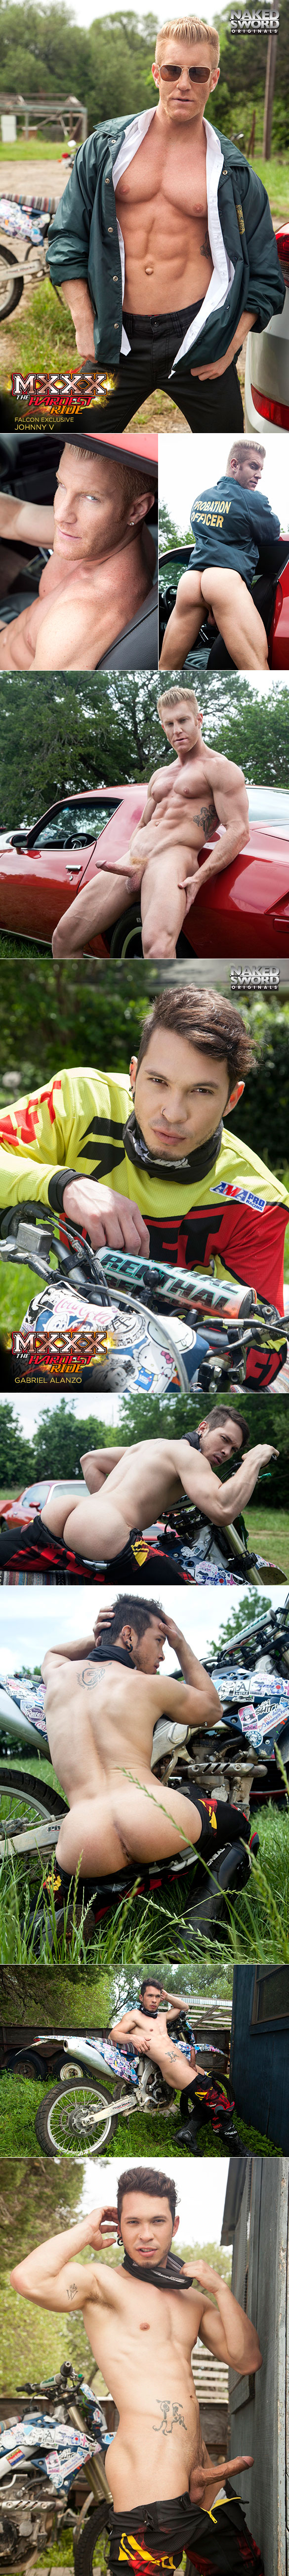 """NakedSword Originals: Johnny V pounds Gabriel Alanzo in """"MXXX - The Hardest Ride, Ep. 3: Don't Mess with Johnny Law"""""""